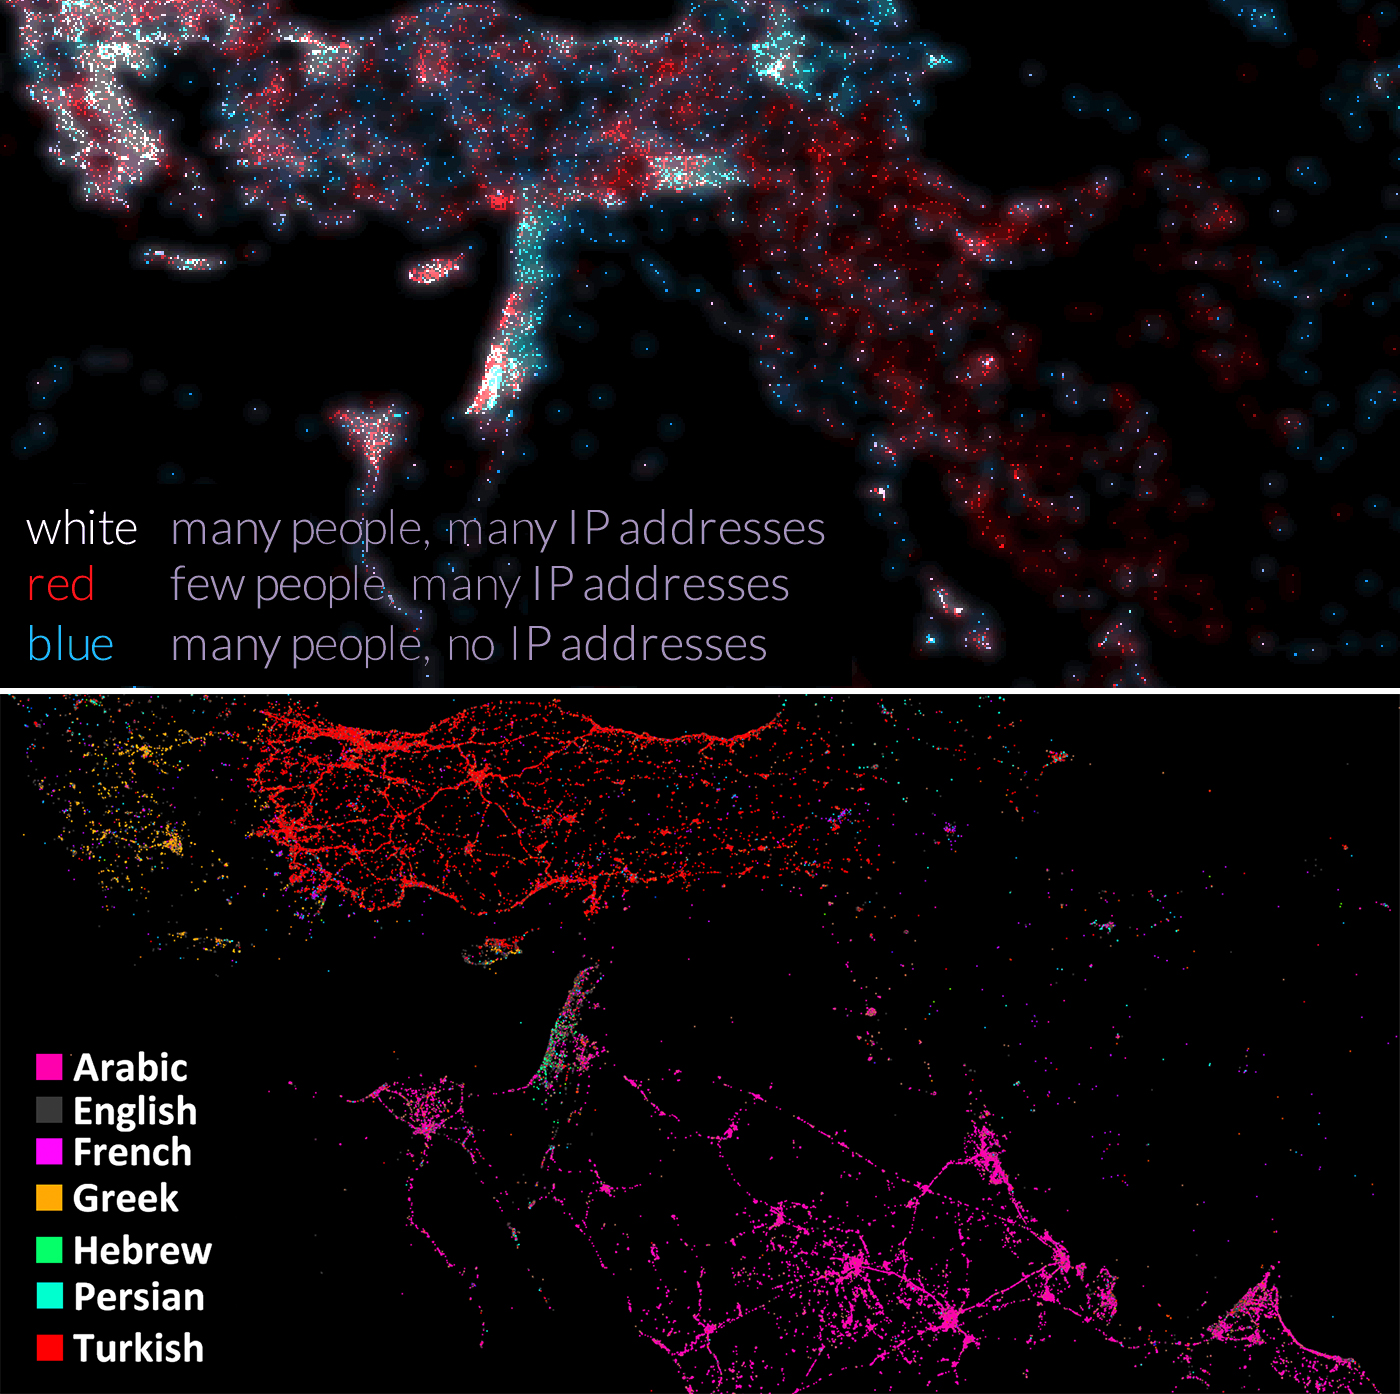 Mapped by Internet connections (top) and by tweets (bottom)